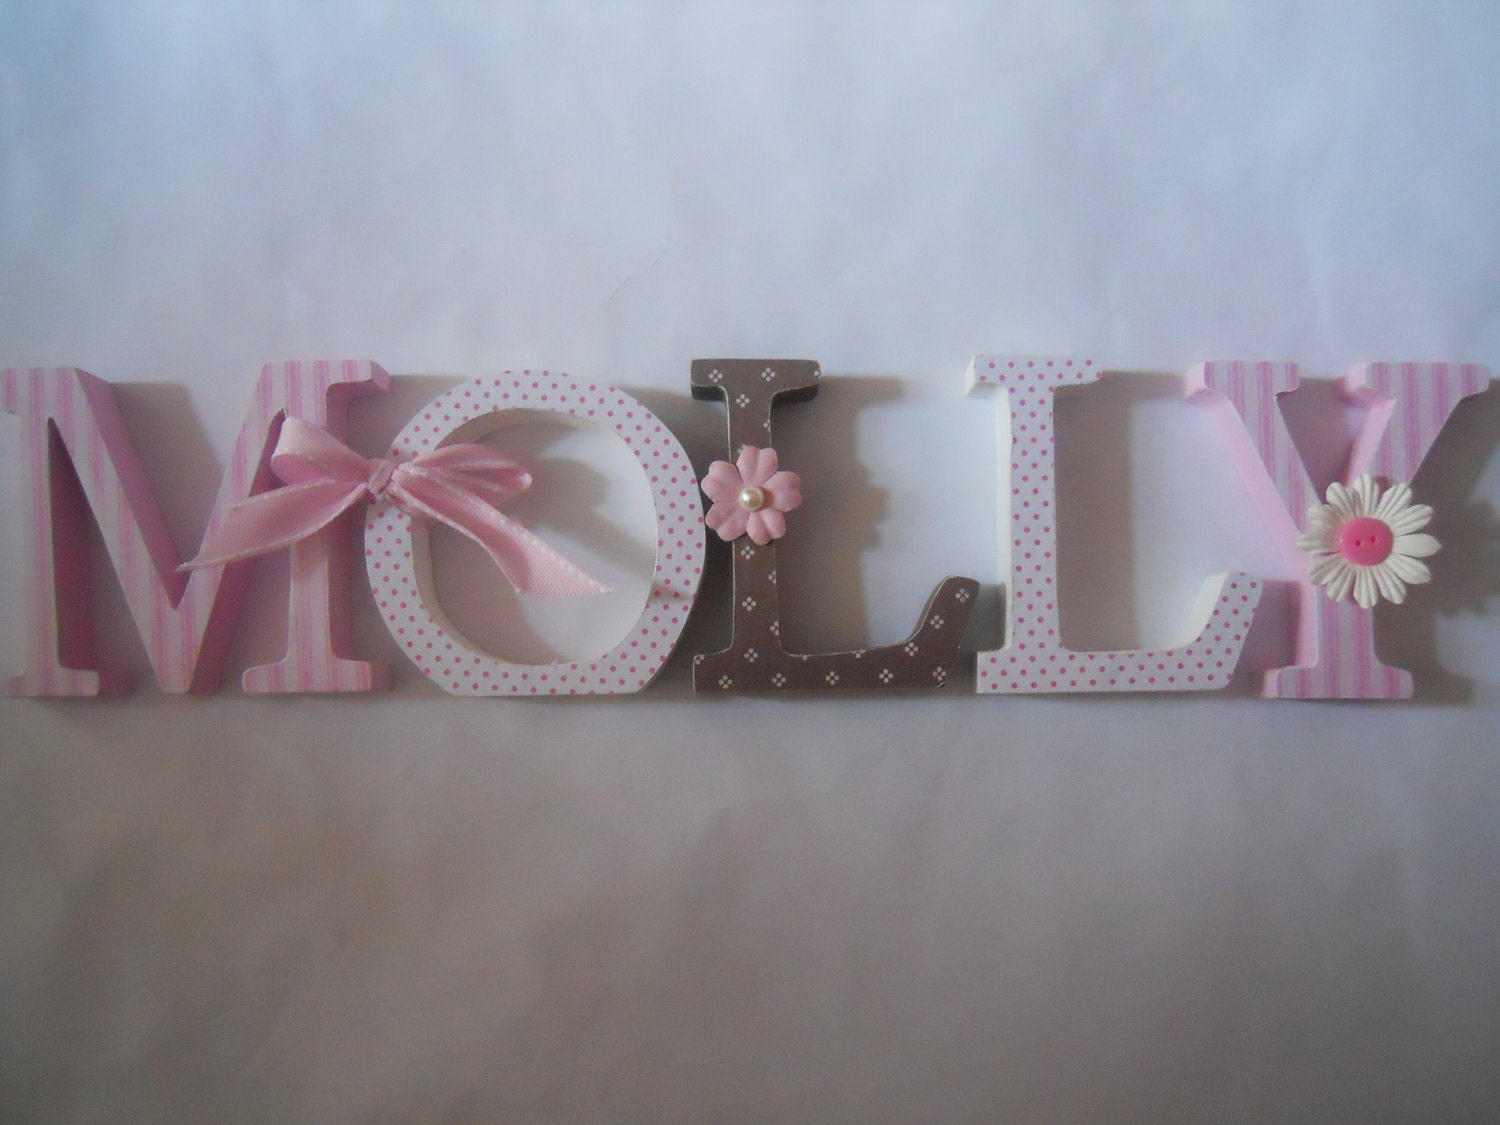 Wooden Letters For Nursery In Pink White And Brown